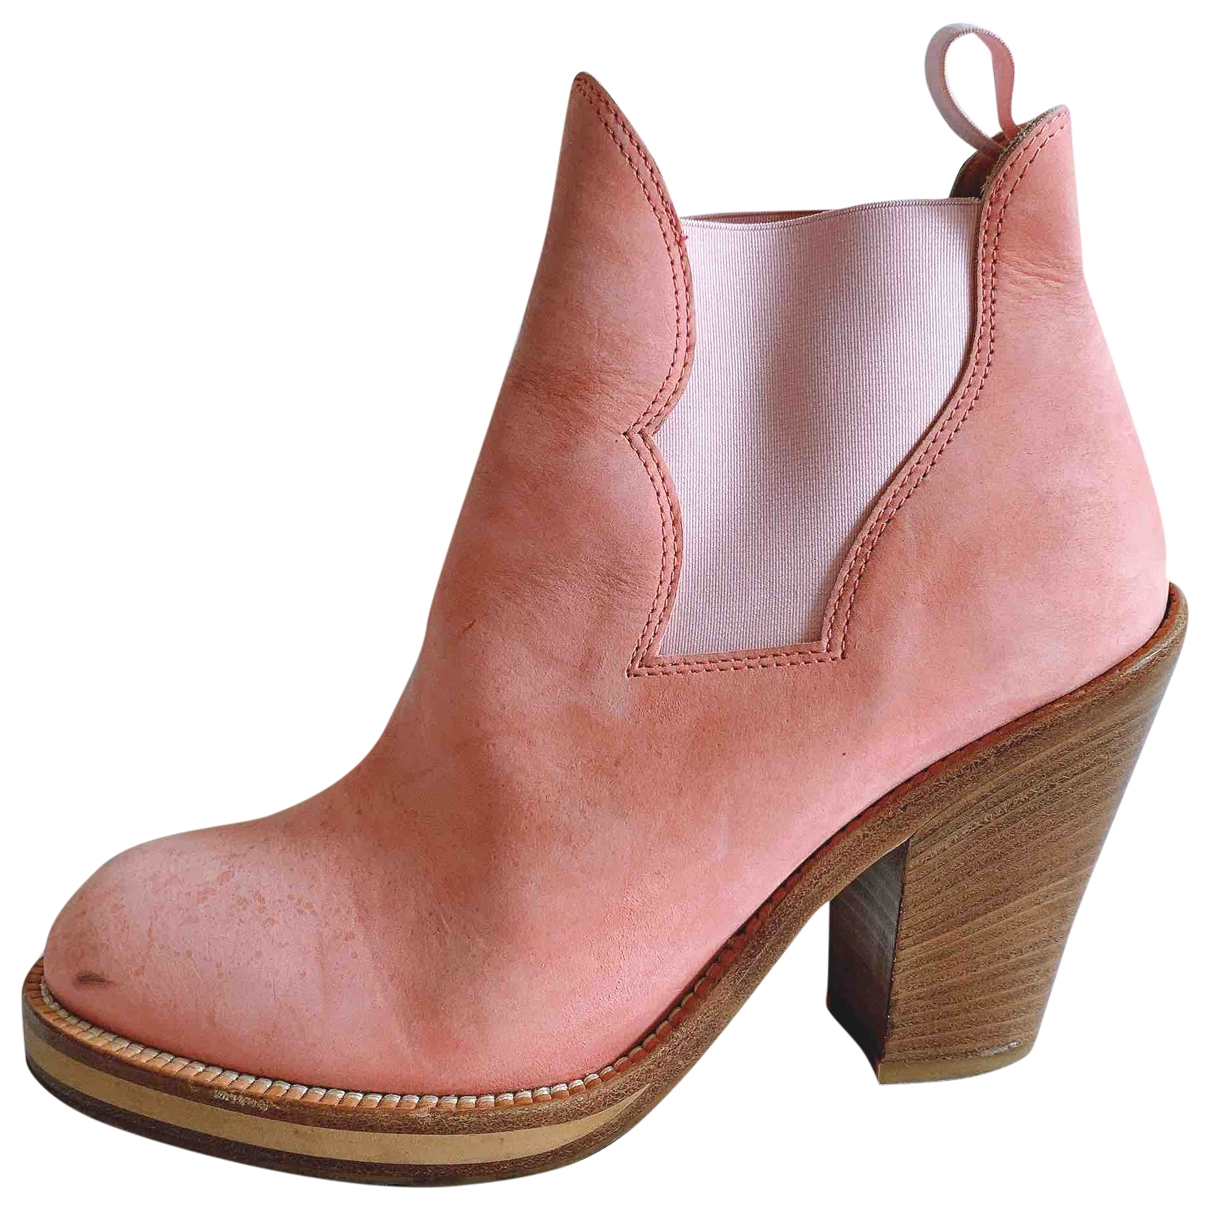 Acne Studios Star Pink Leather Ankle boots for Women 37 EU